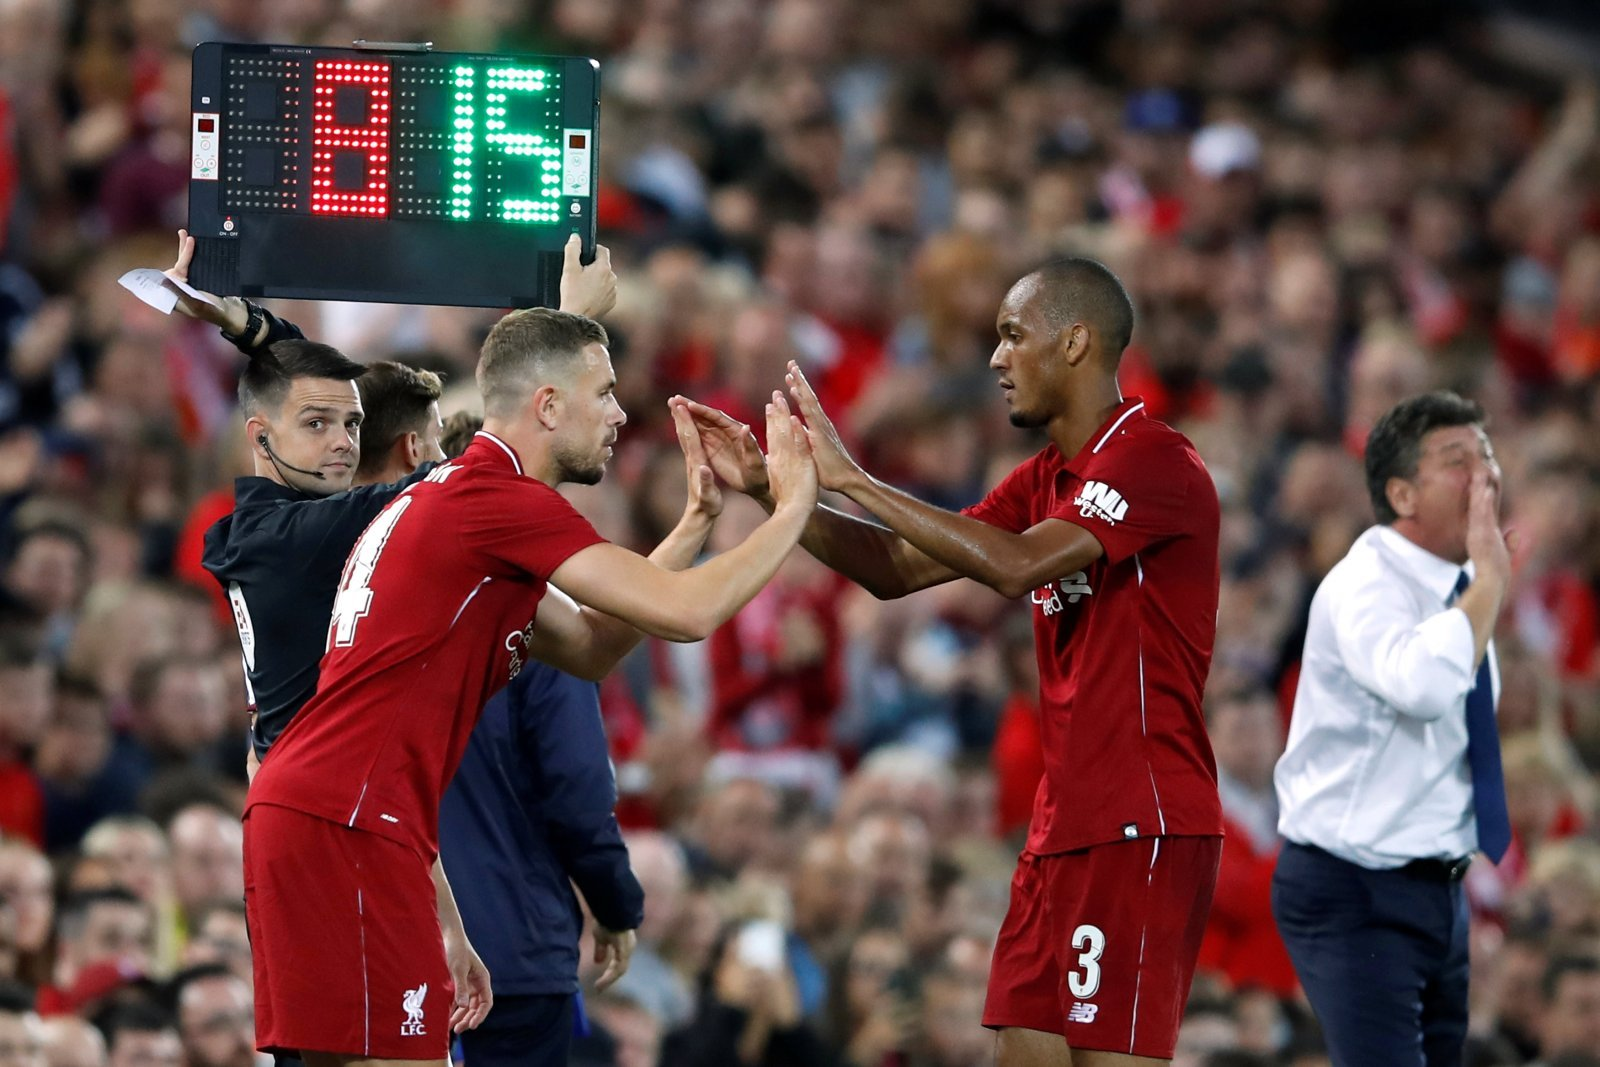 Fabinho's improvement is very good for Jordan Henderson